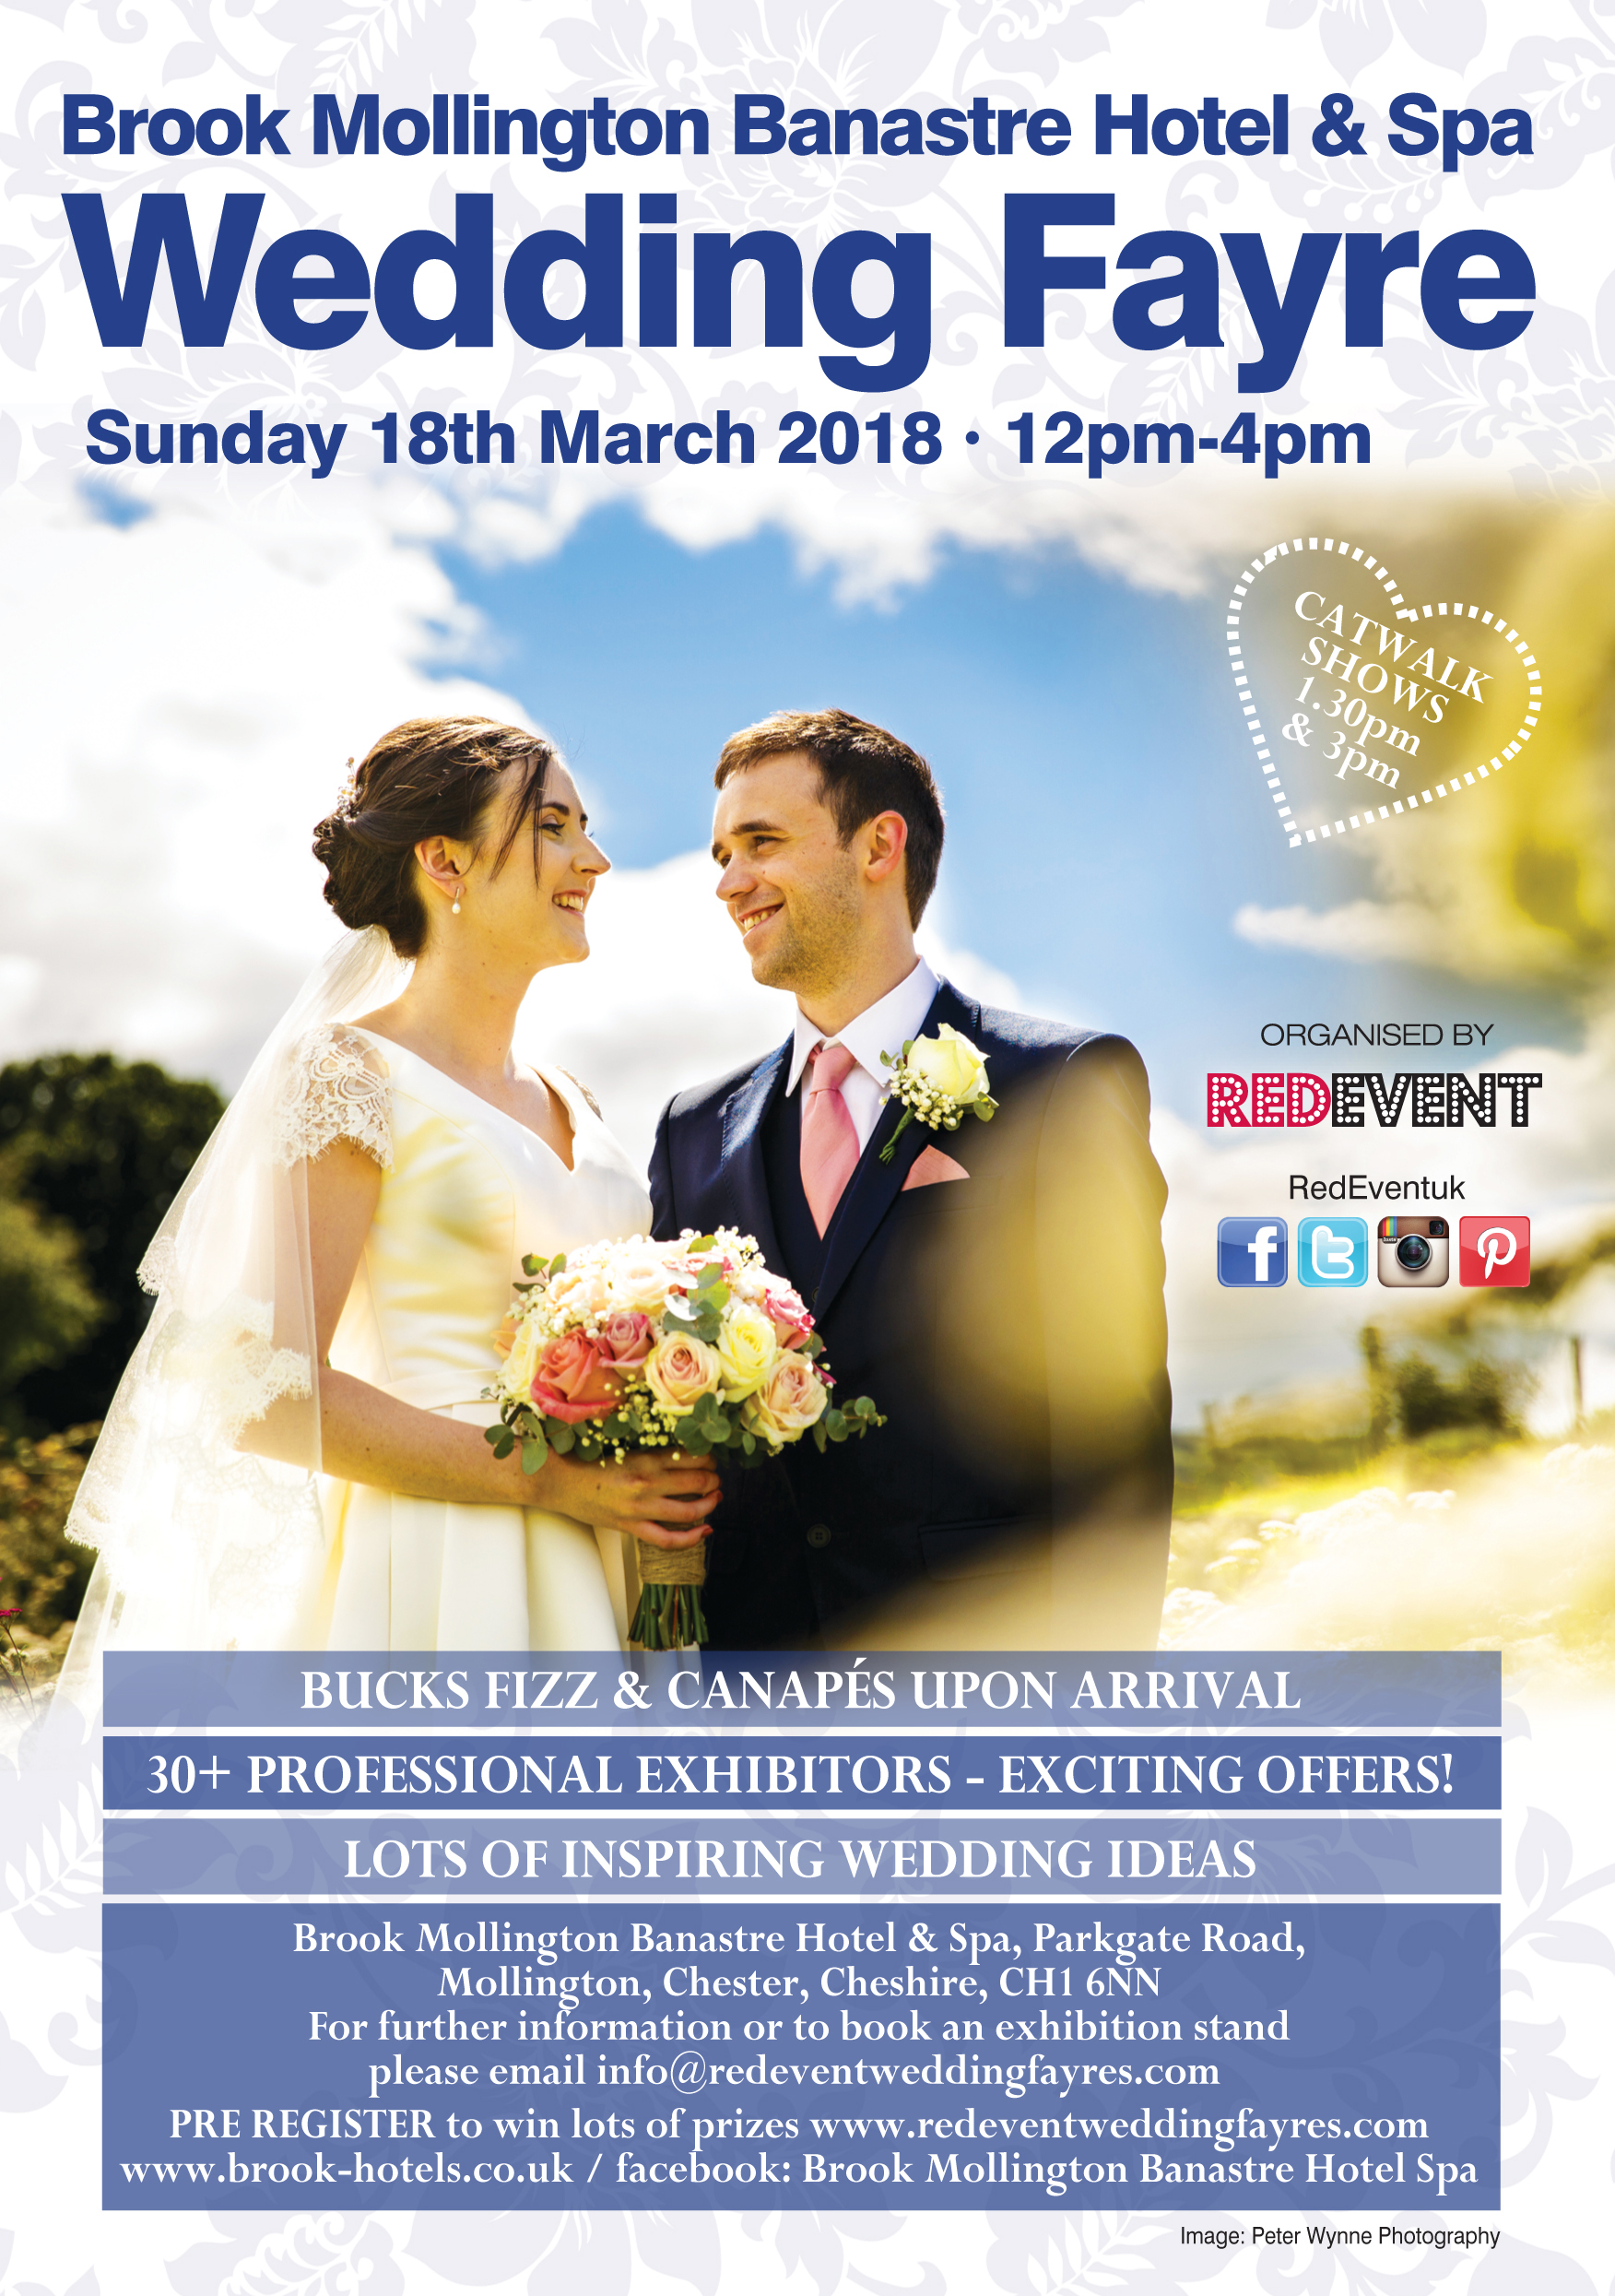 Wedding Fayre at Brook Mollington Banastre Hotel & Spa